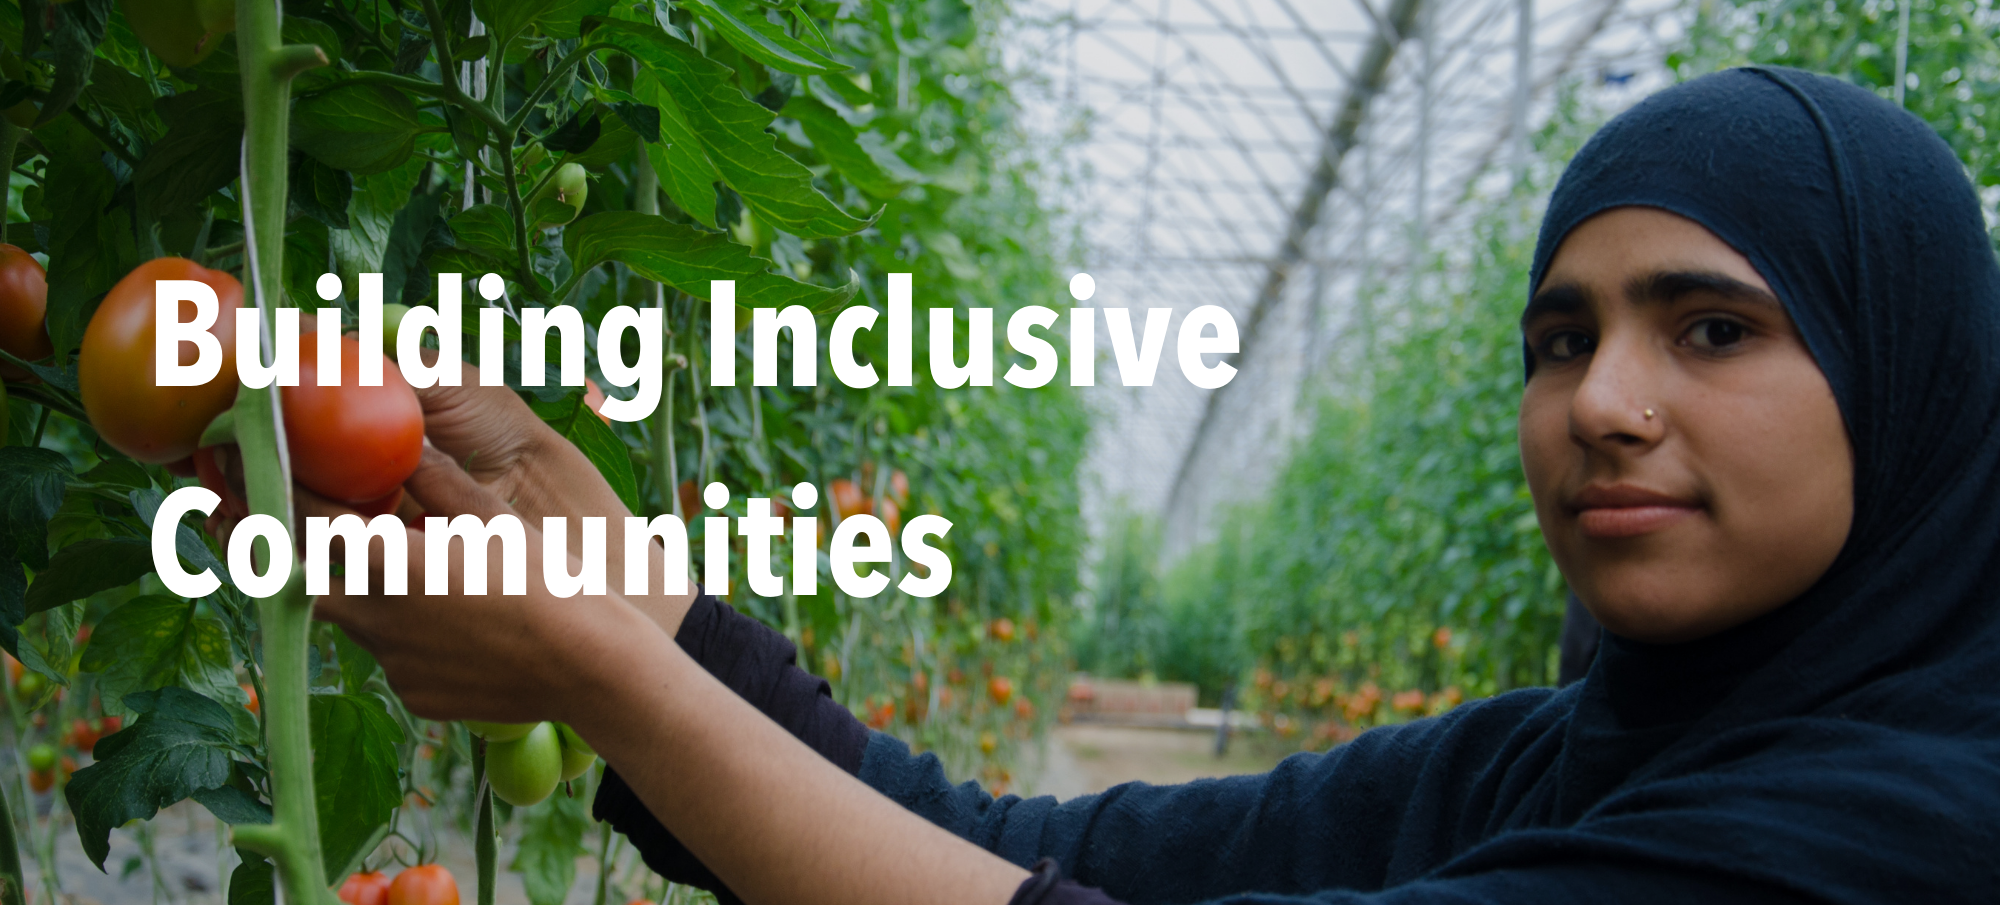 """Woman picking tomato in greenhouse with header text """"Building Inclusive Communities"""""""